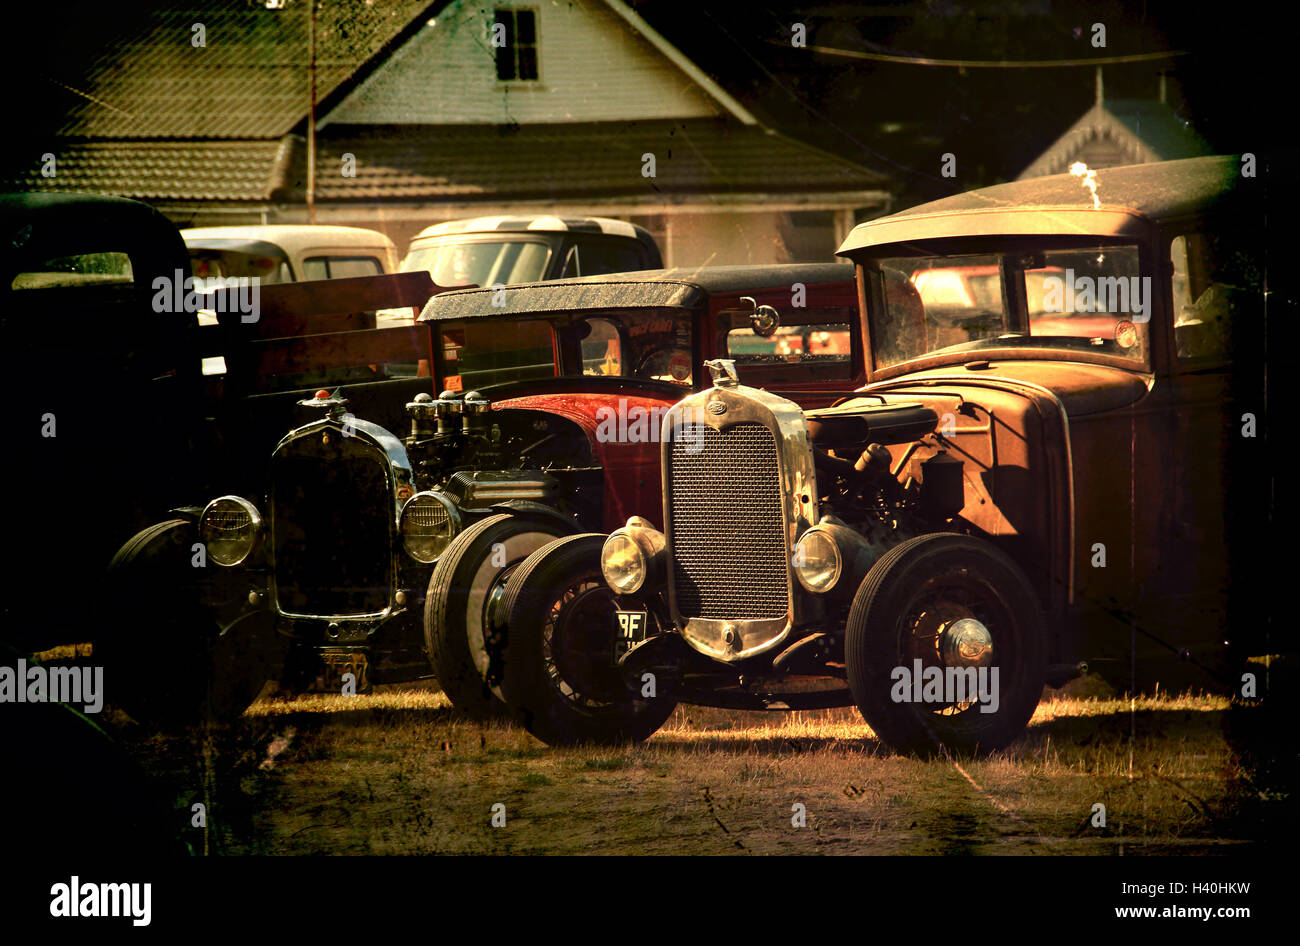 Model A Hot rods Stock Photo, Royalty Free Image: 122945085 - Alamy